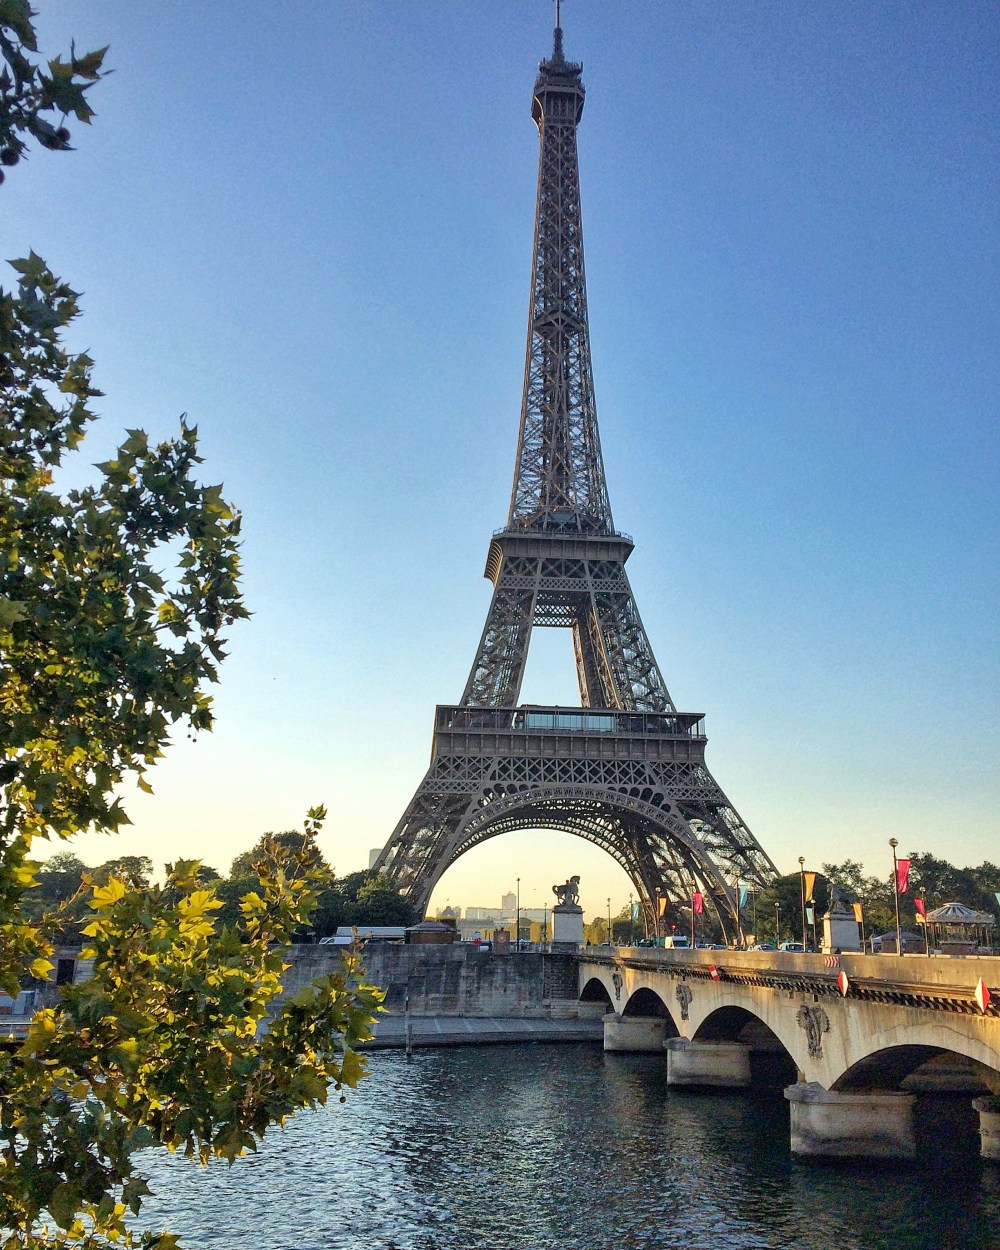 The Eiffel Tower Travel Dating with Tinder vaycarious.com